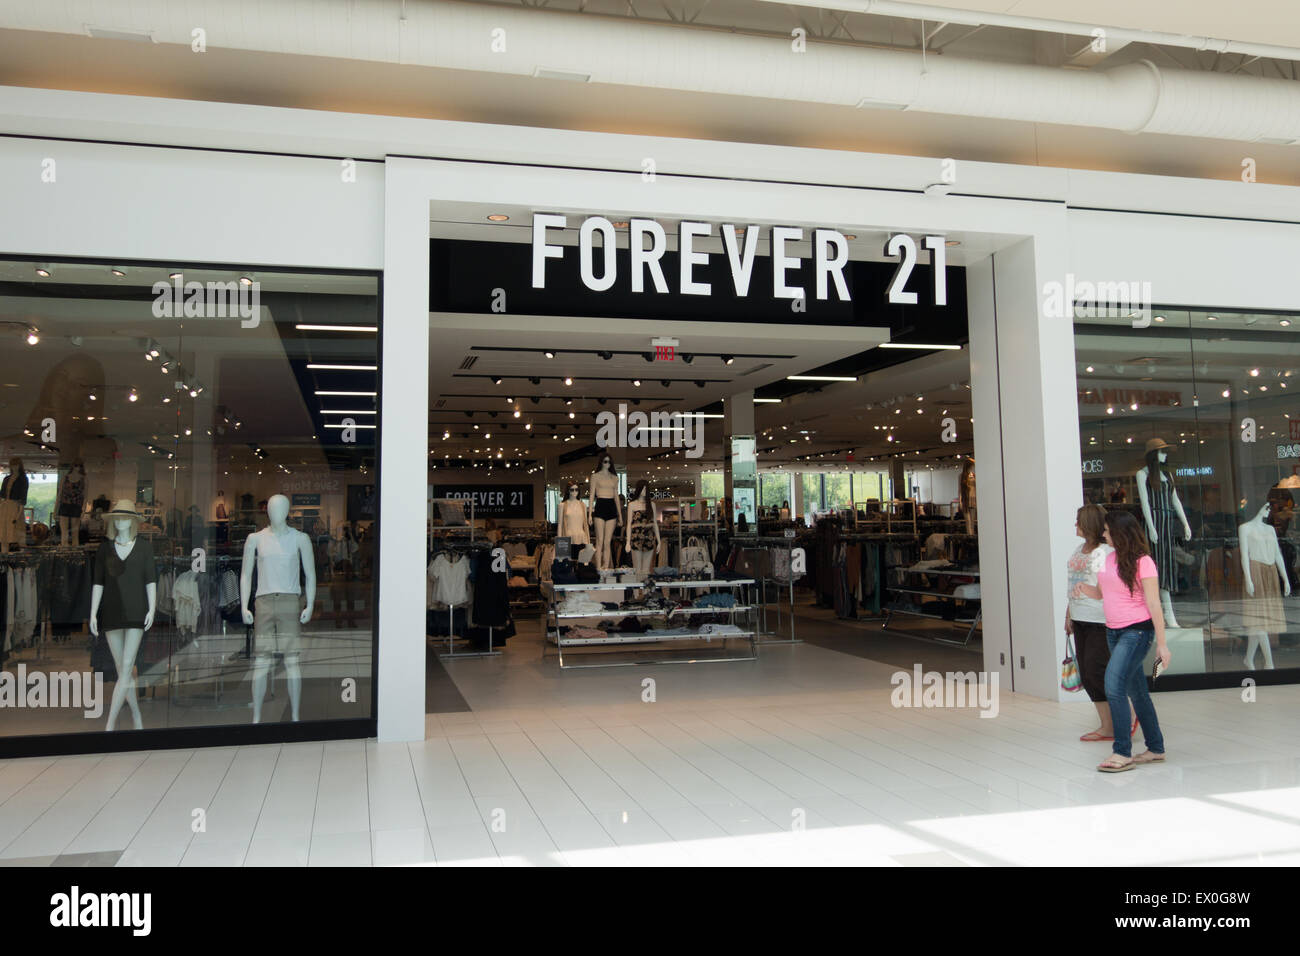 forever 21 store - Stock Image